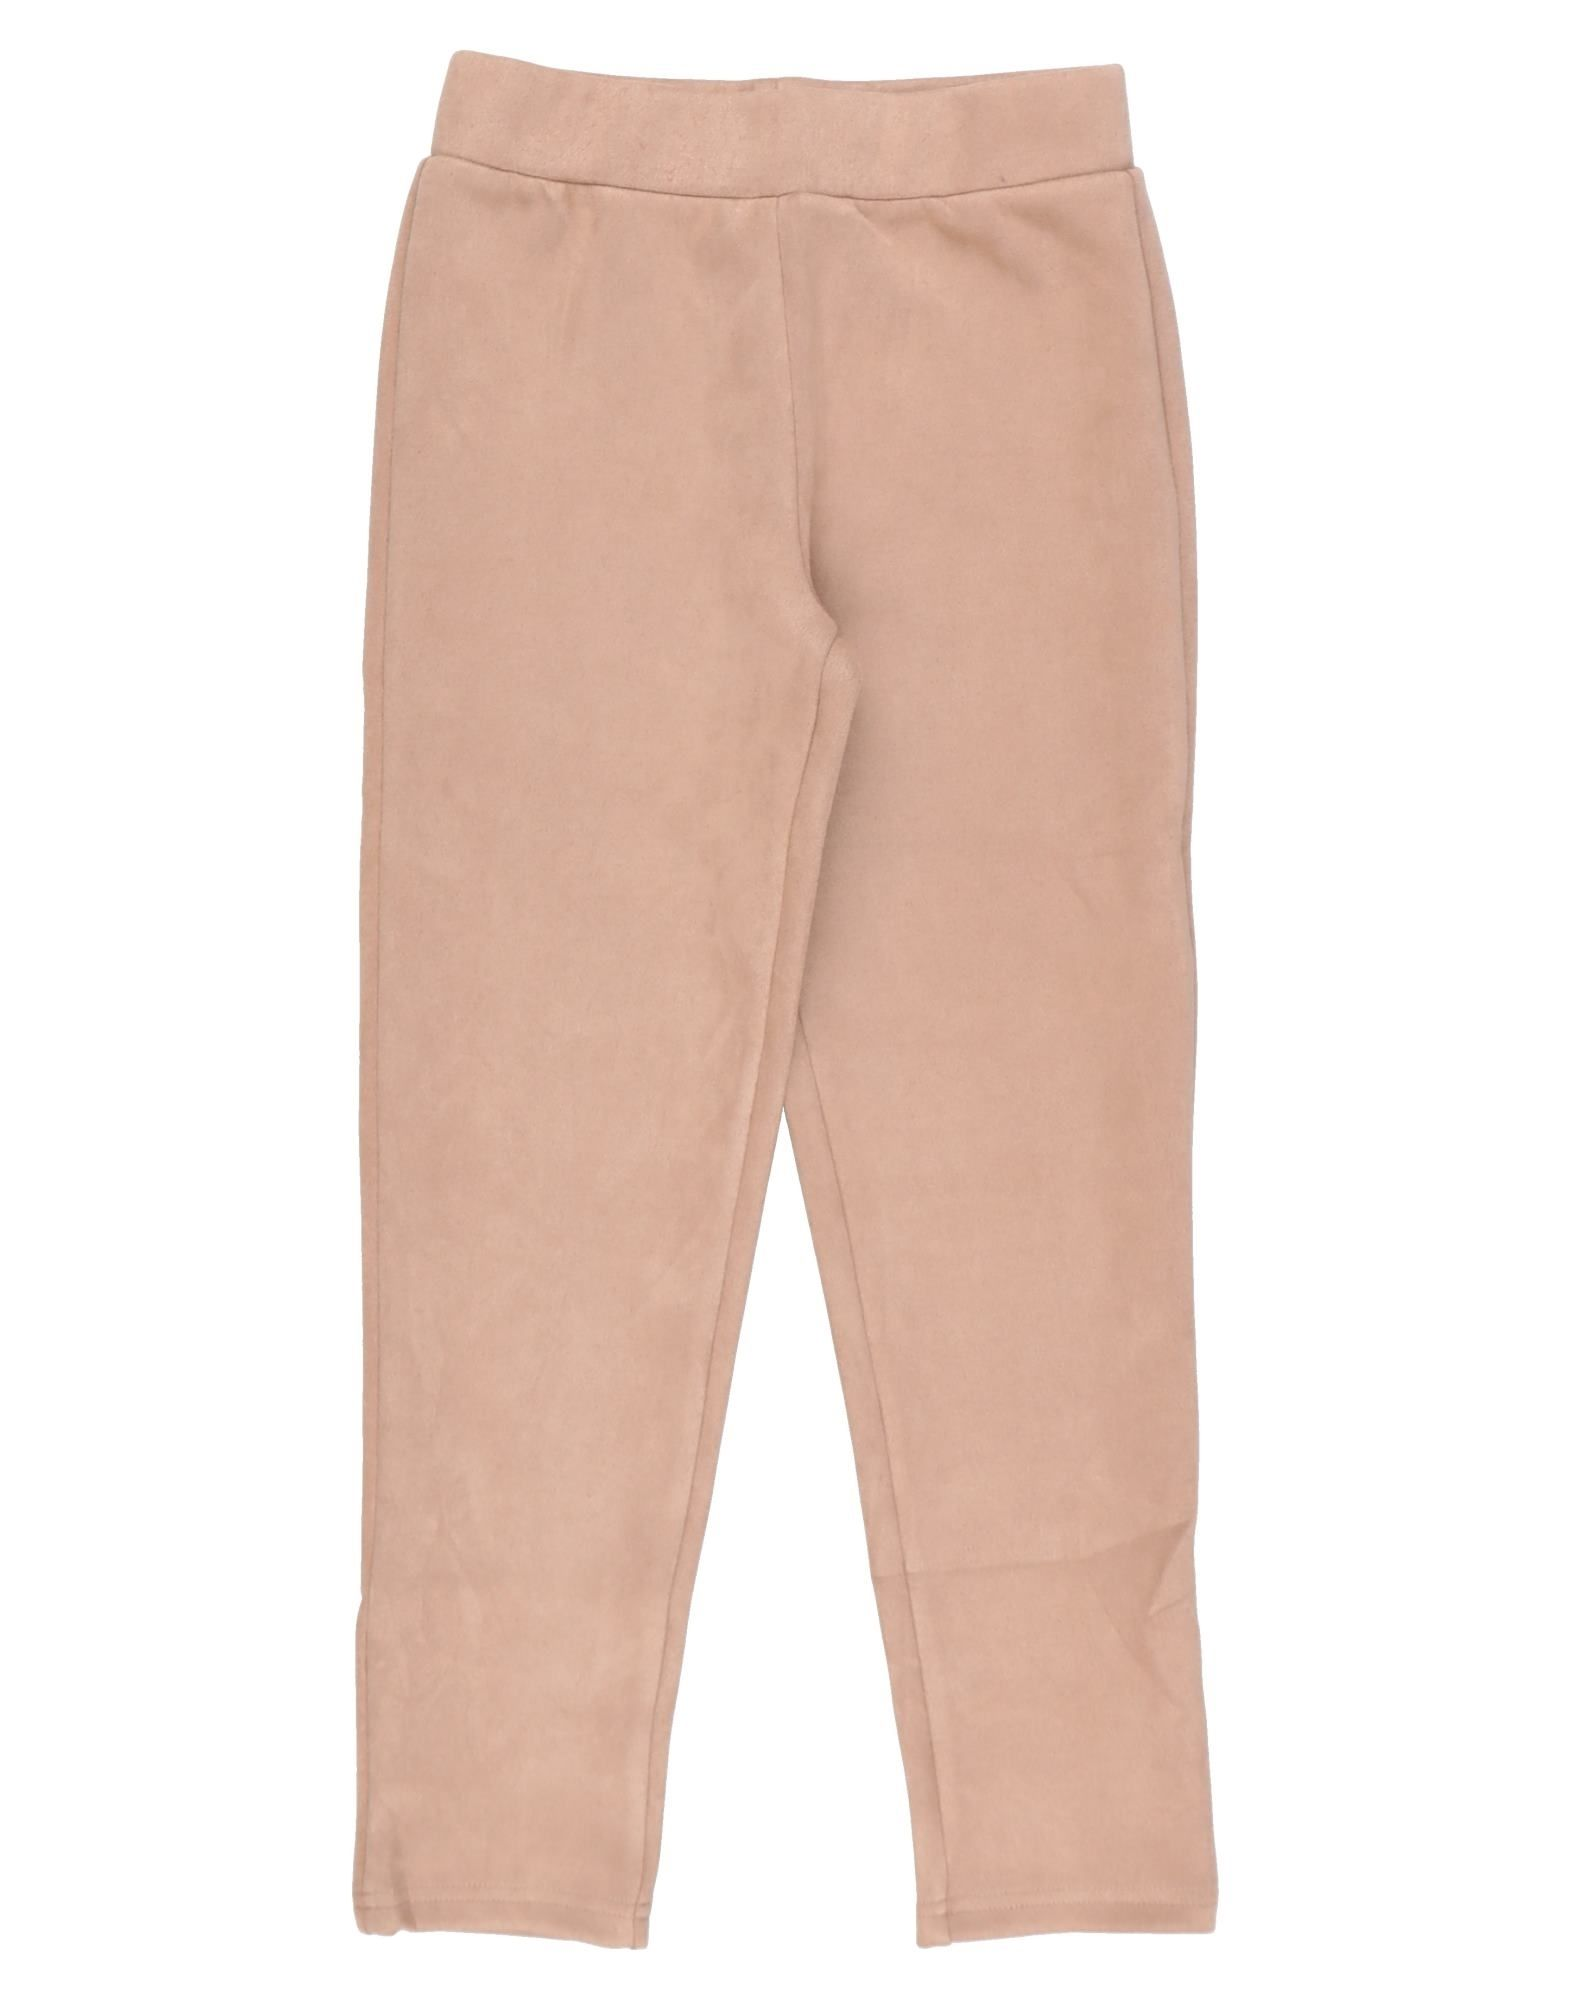 Le Volière Kids' Casual Pants In Sand